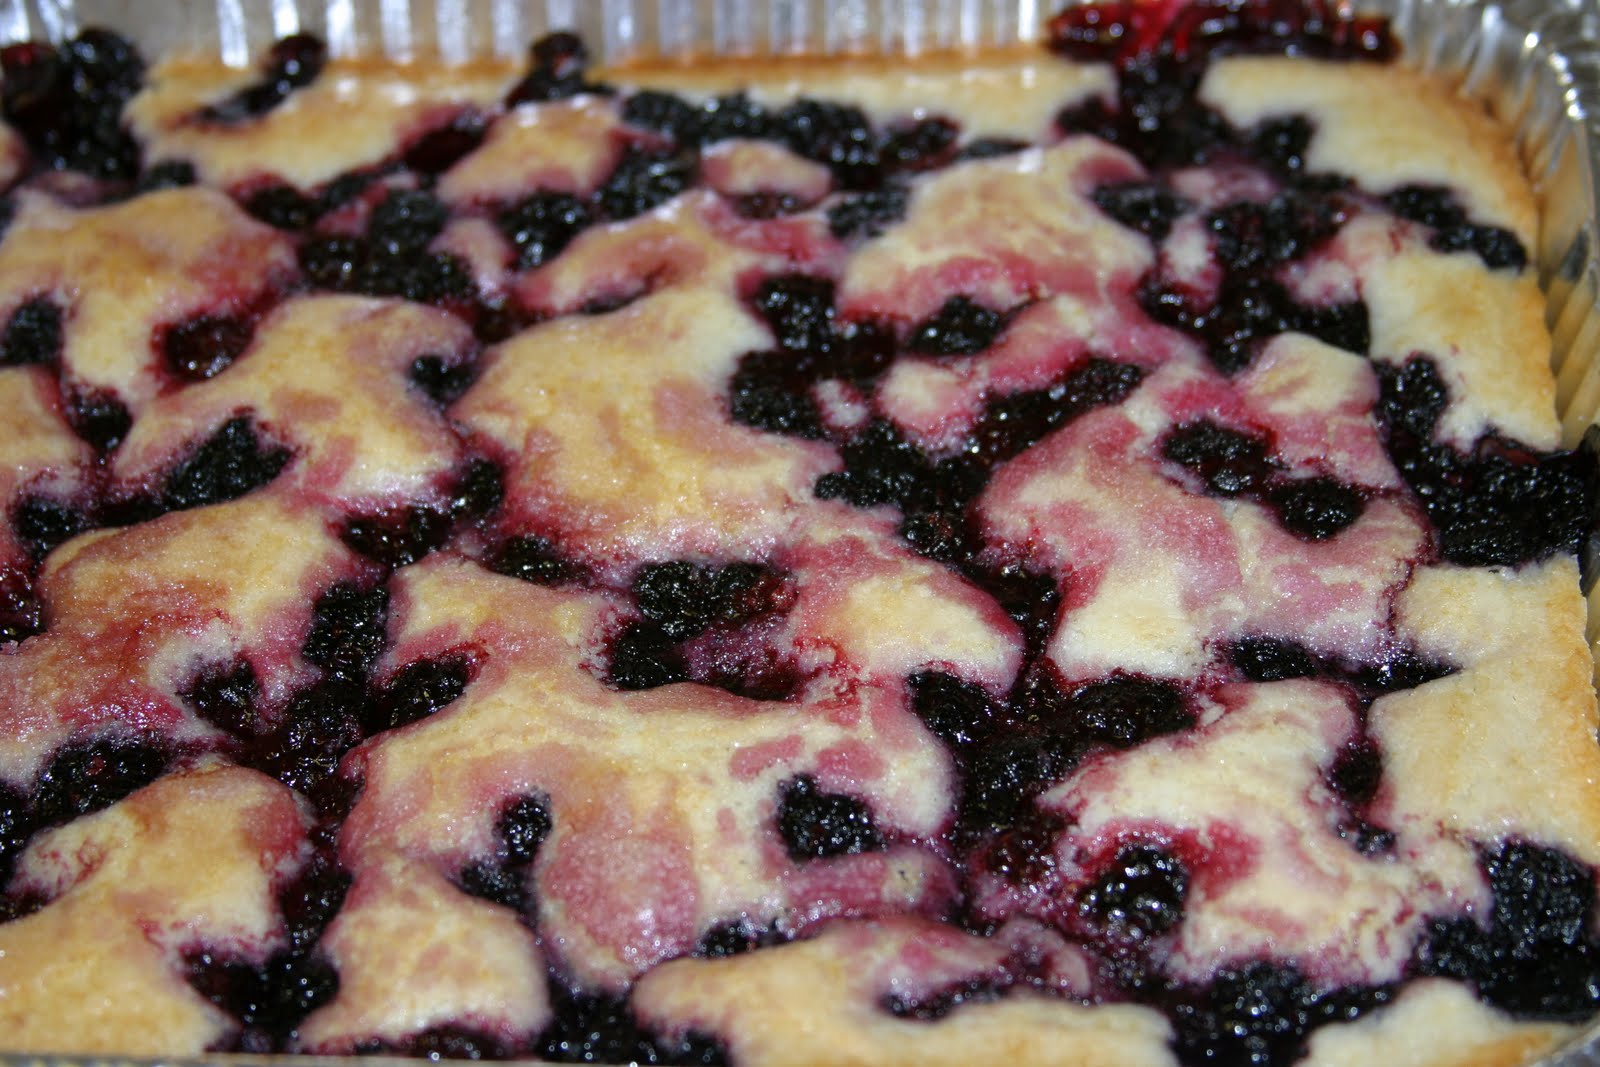 ... seen blackberry cobbler as summer berry cobbler 2 jpg berry cobbler